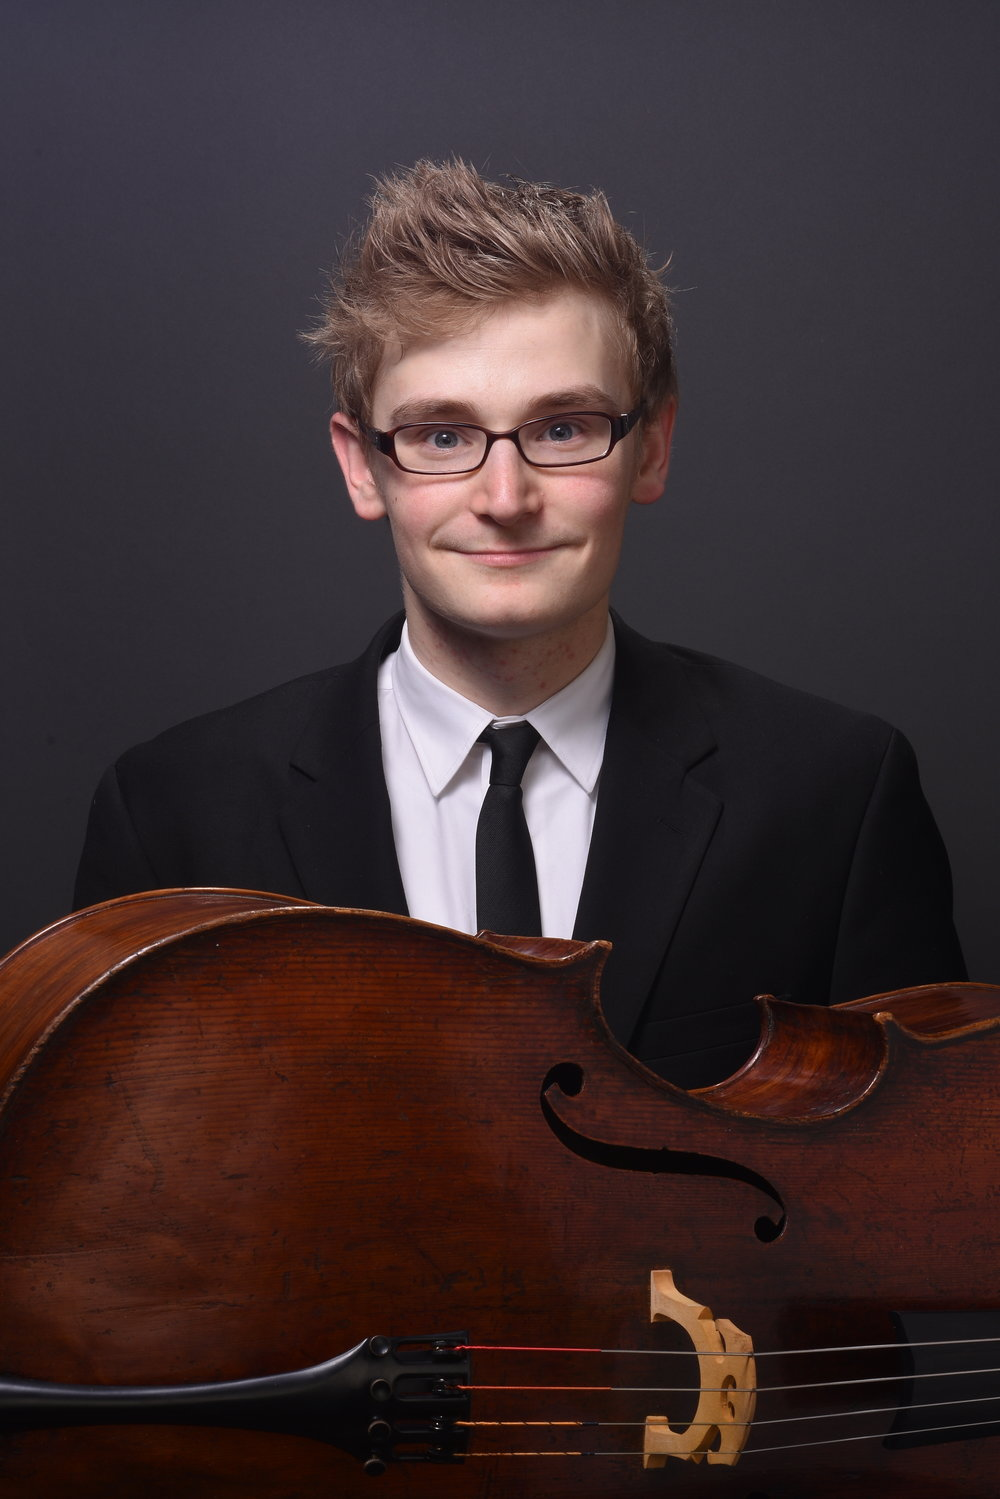 Alexander Hersh, cello